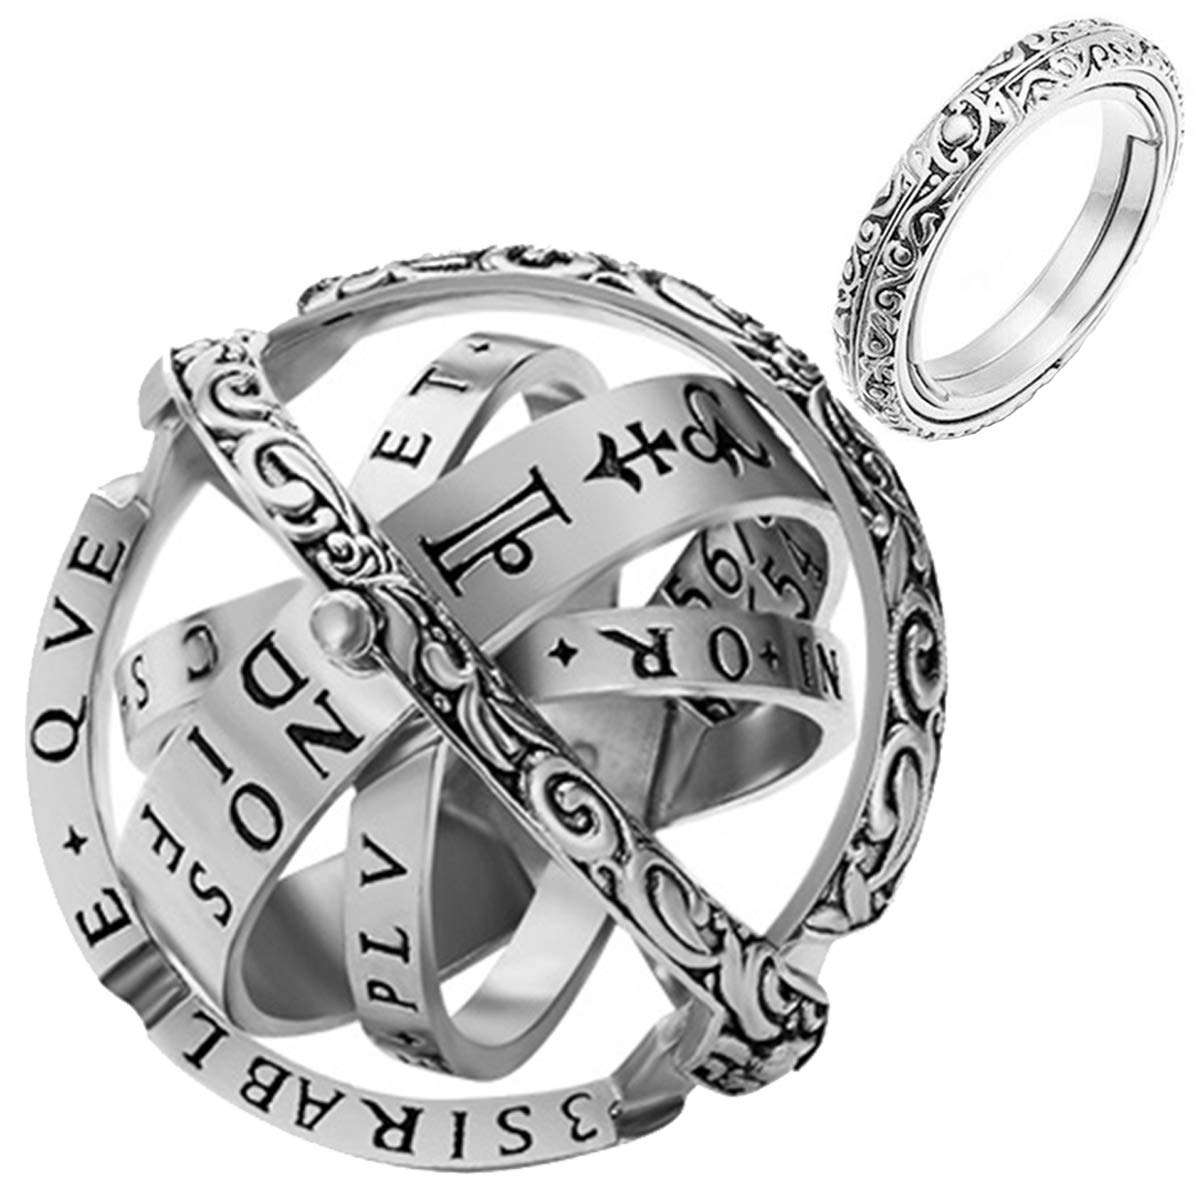 YandMe 2019 New Astronomical Sphere Ball Ring Vintage Foldable Open Cosmic Ring Best Gift for Lover by YandMe